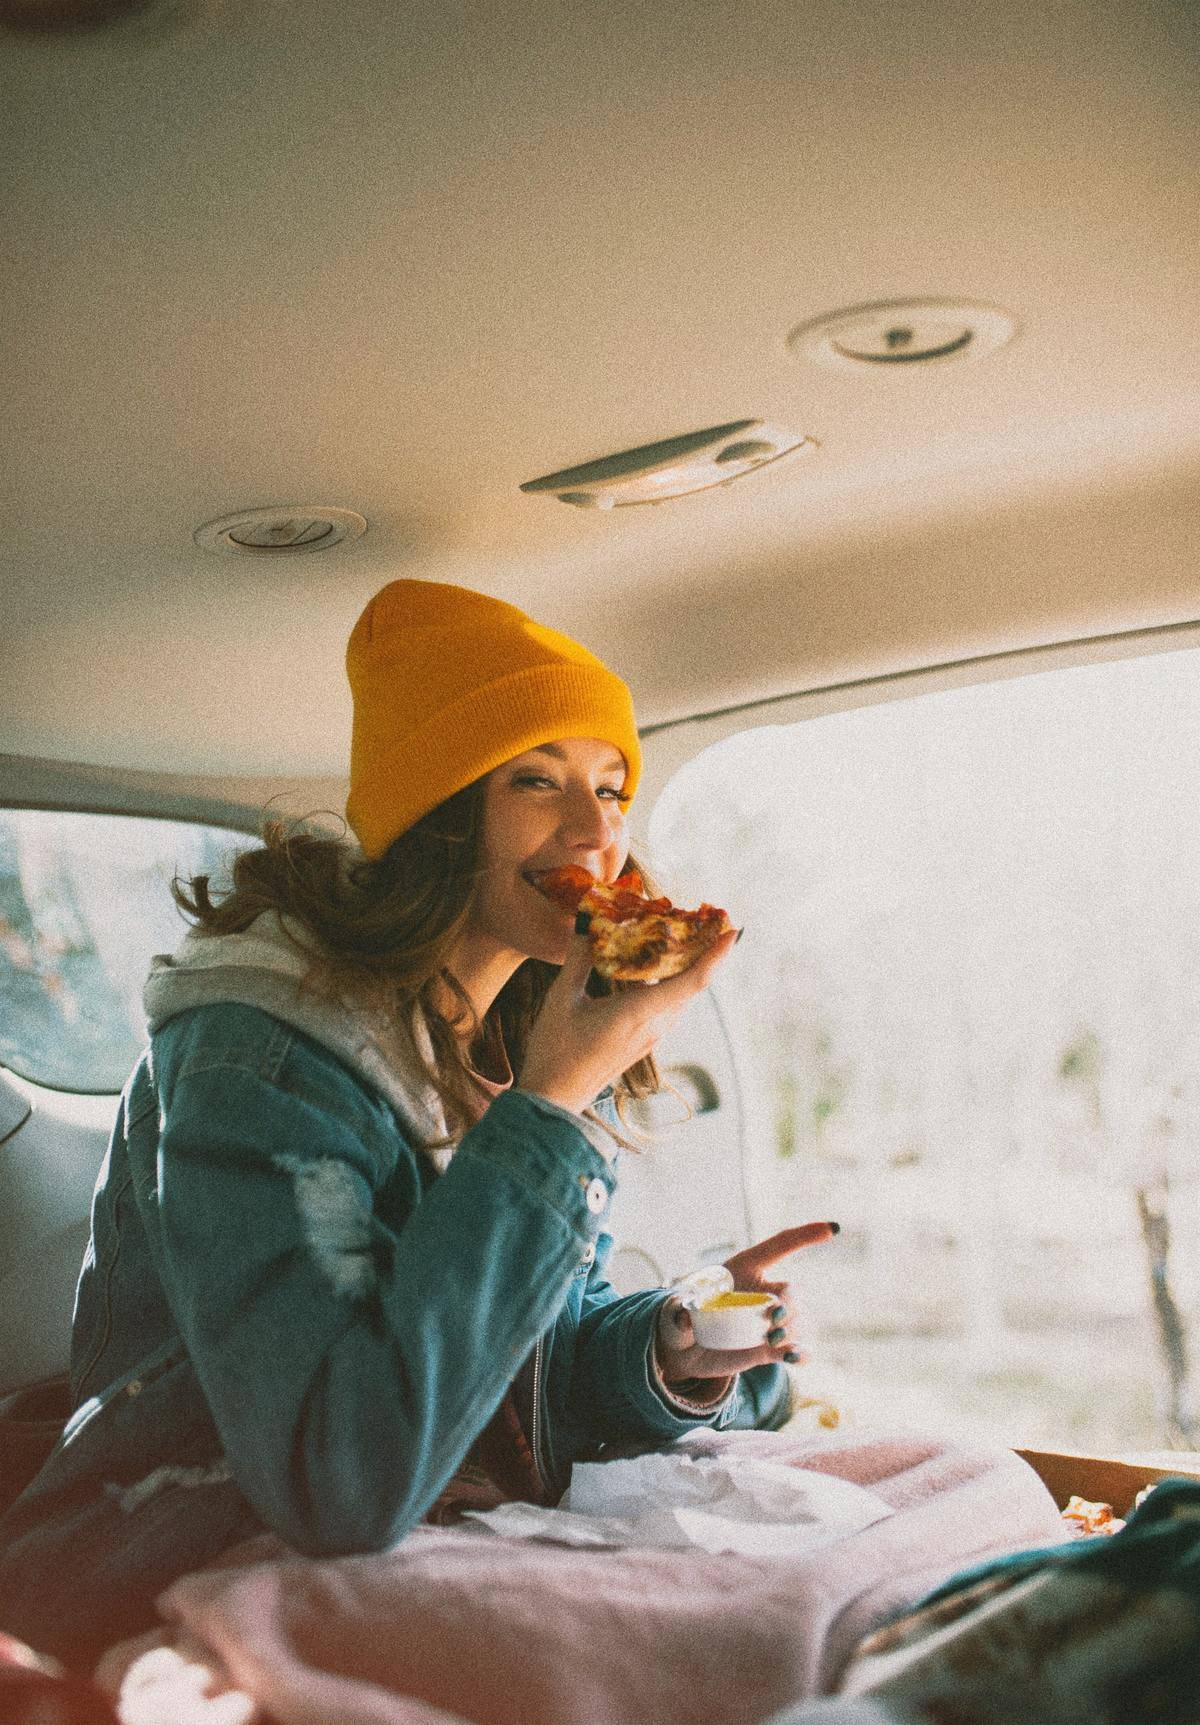 woman eating pizza in a car